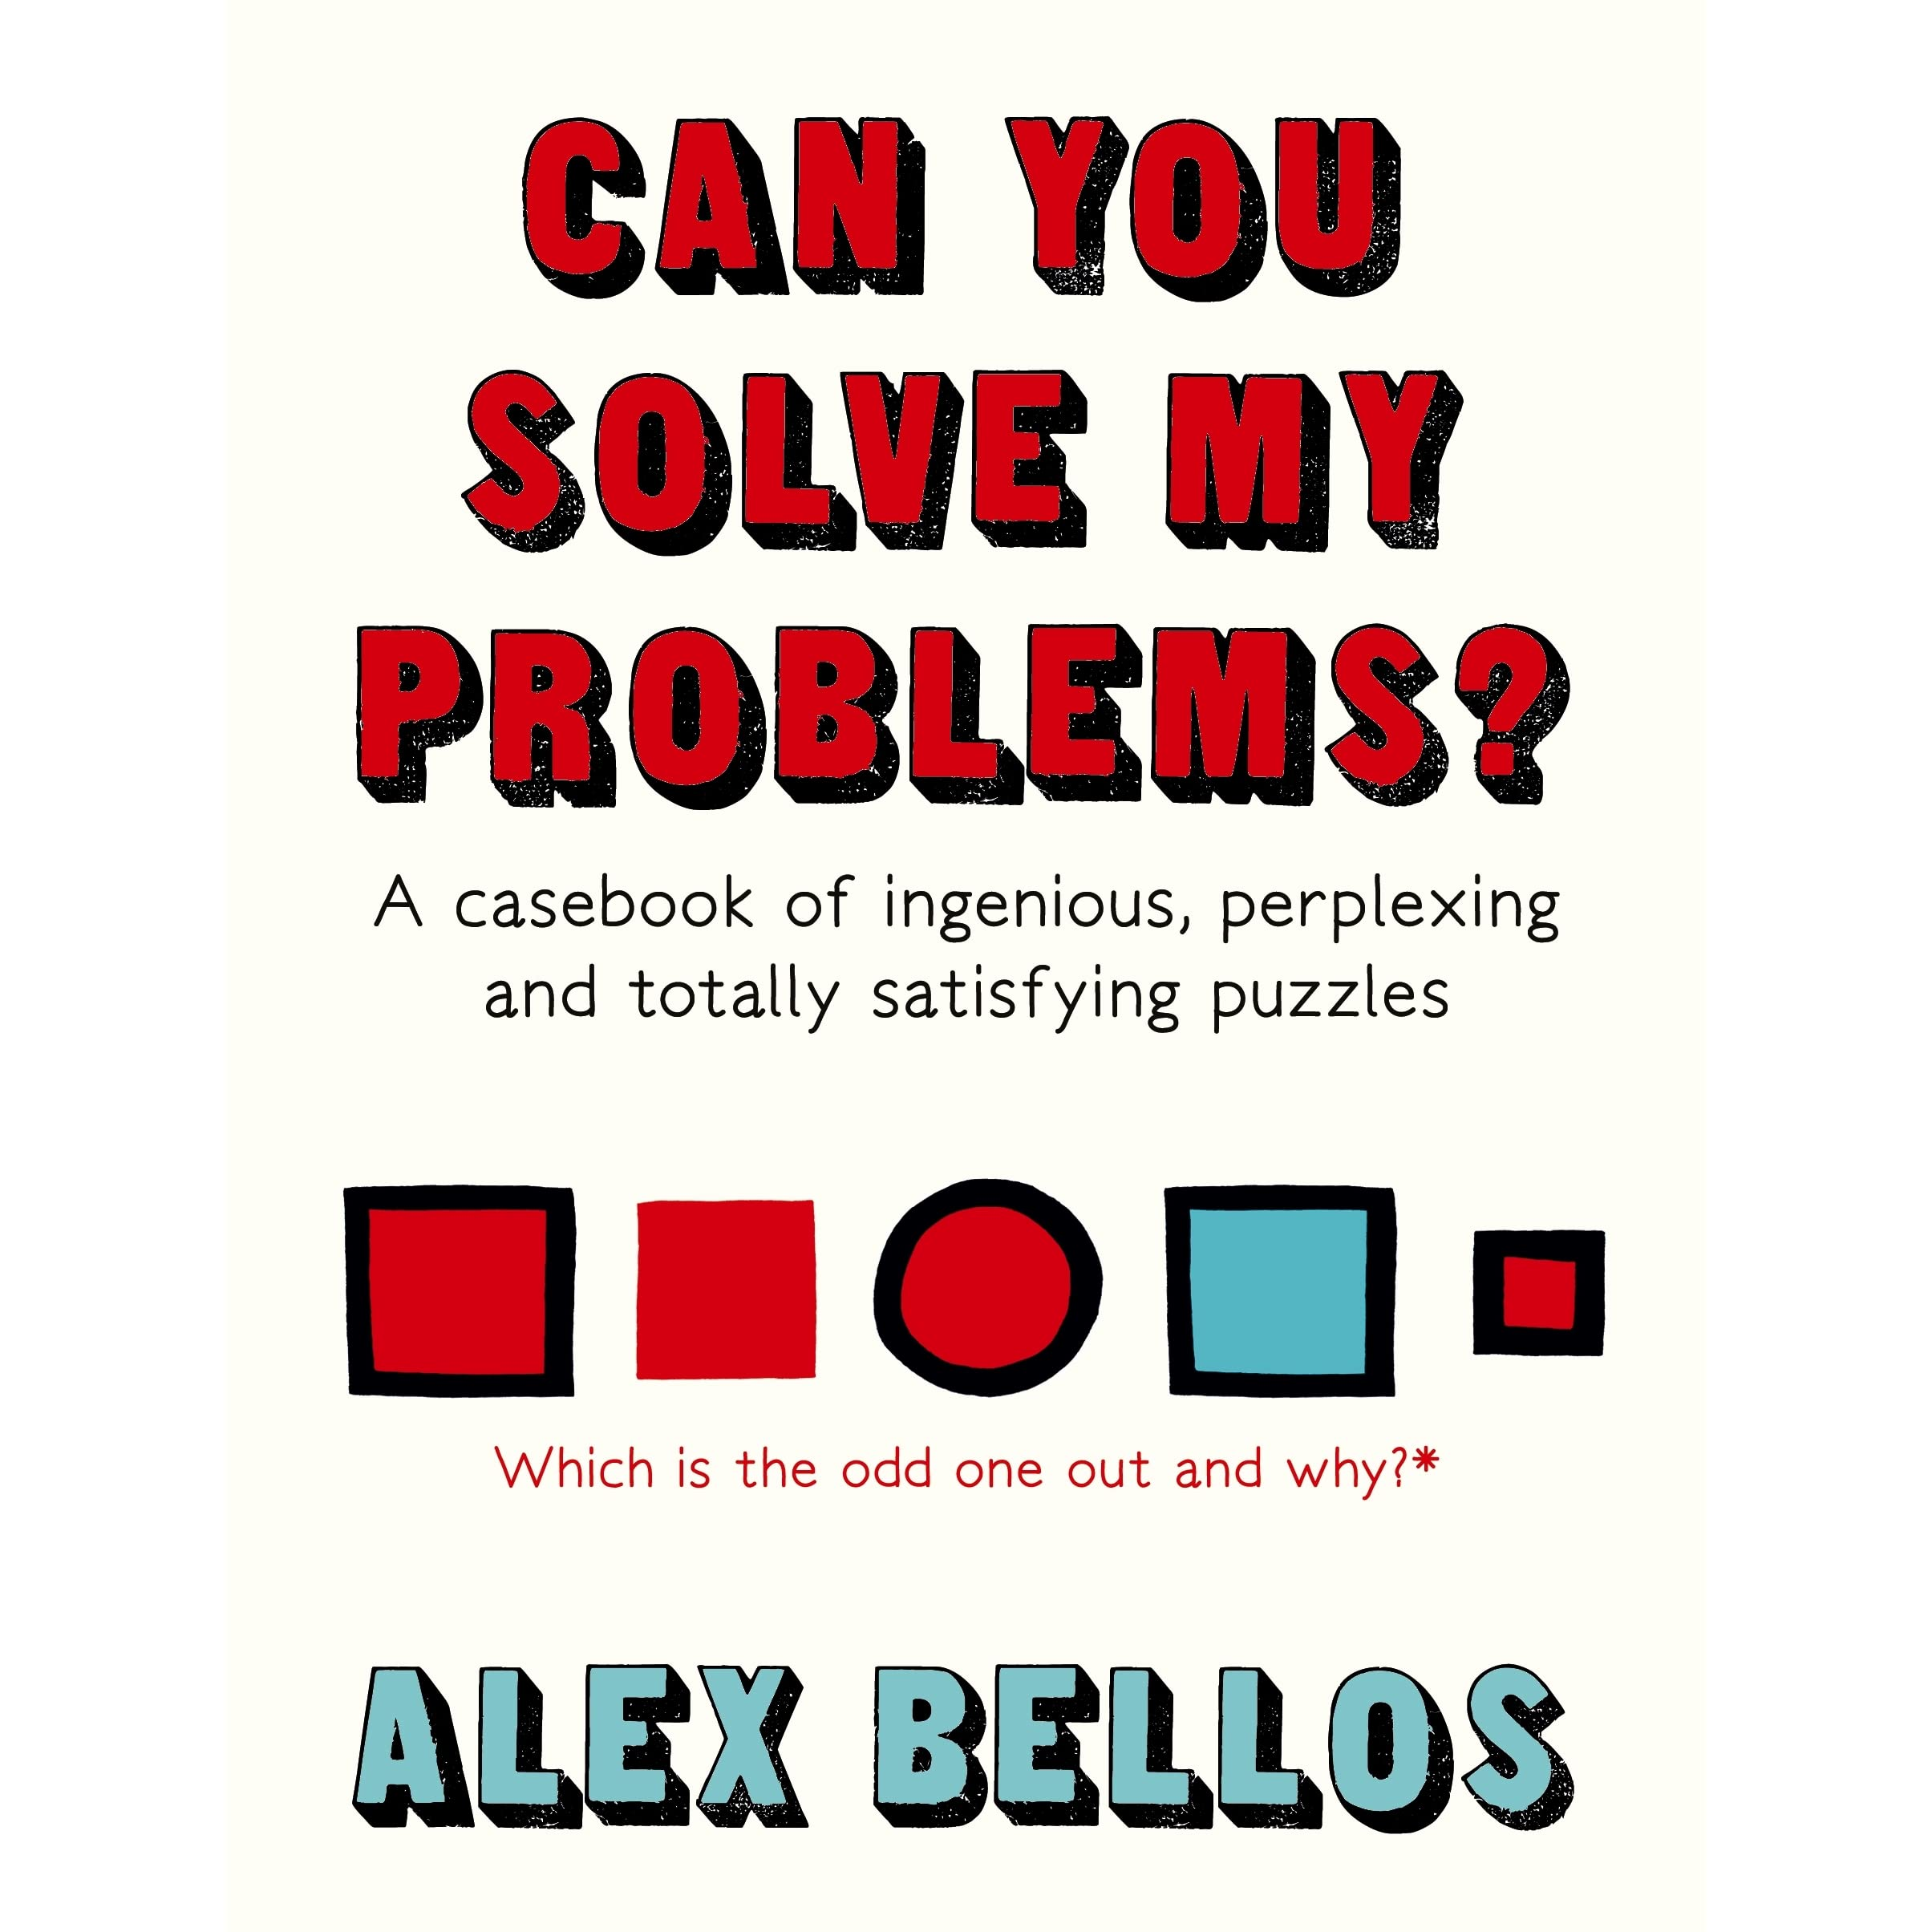 Can you solve my problems a casebook of ingenious perplexing and can you solve my problems a casebook of ingenious perplexing and totally satisfying puzzles by alex bellos fandeluxe Image collections